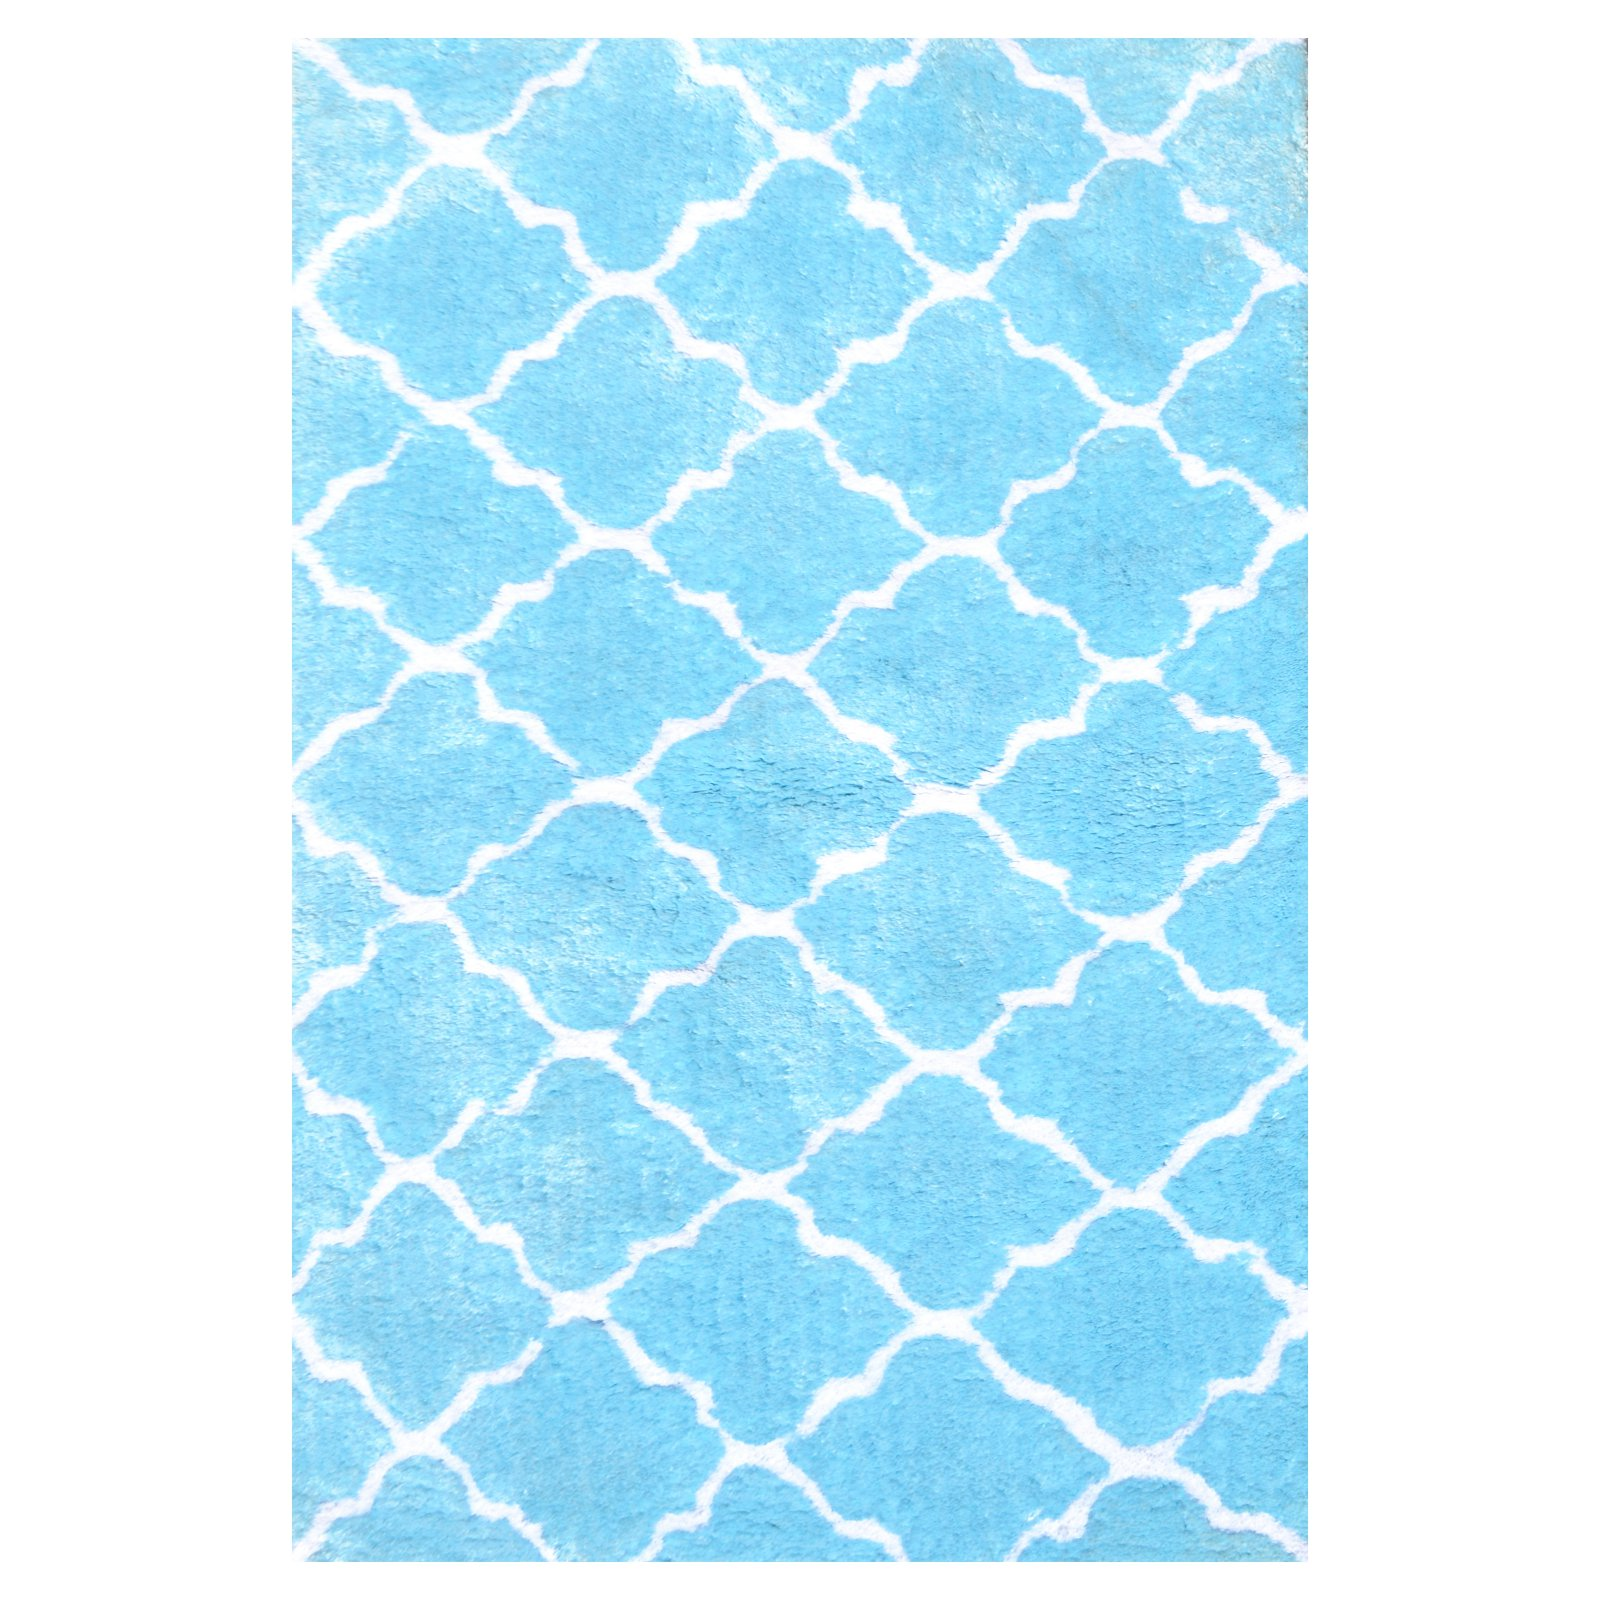 The Rug Market Couture Blue Area Rug, Size 2.8' x 4.8'